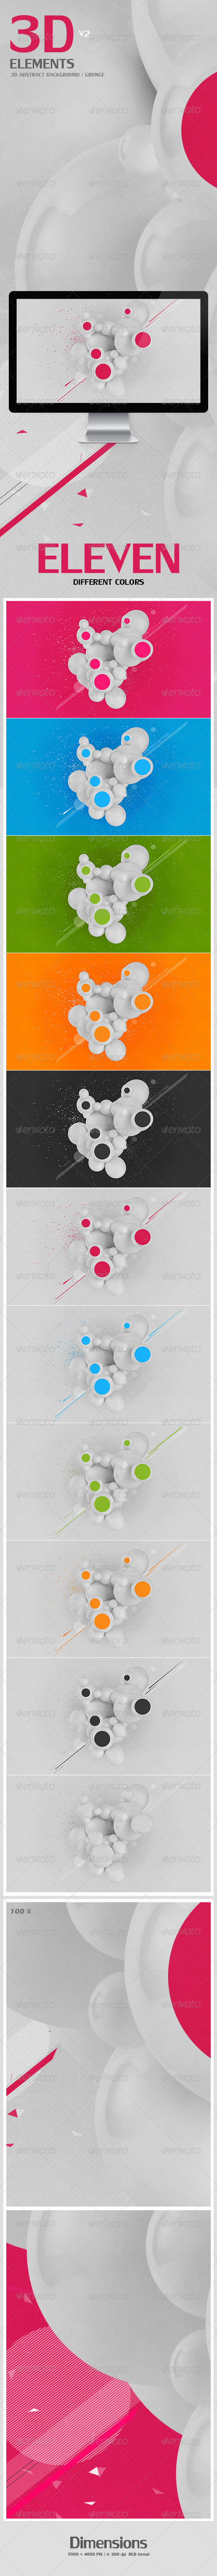 GraphicRiver 3D Abstract Background Grunge V2 4266248